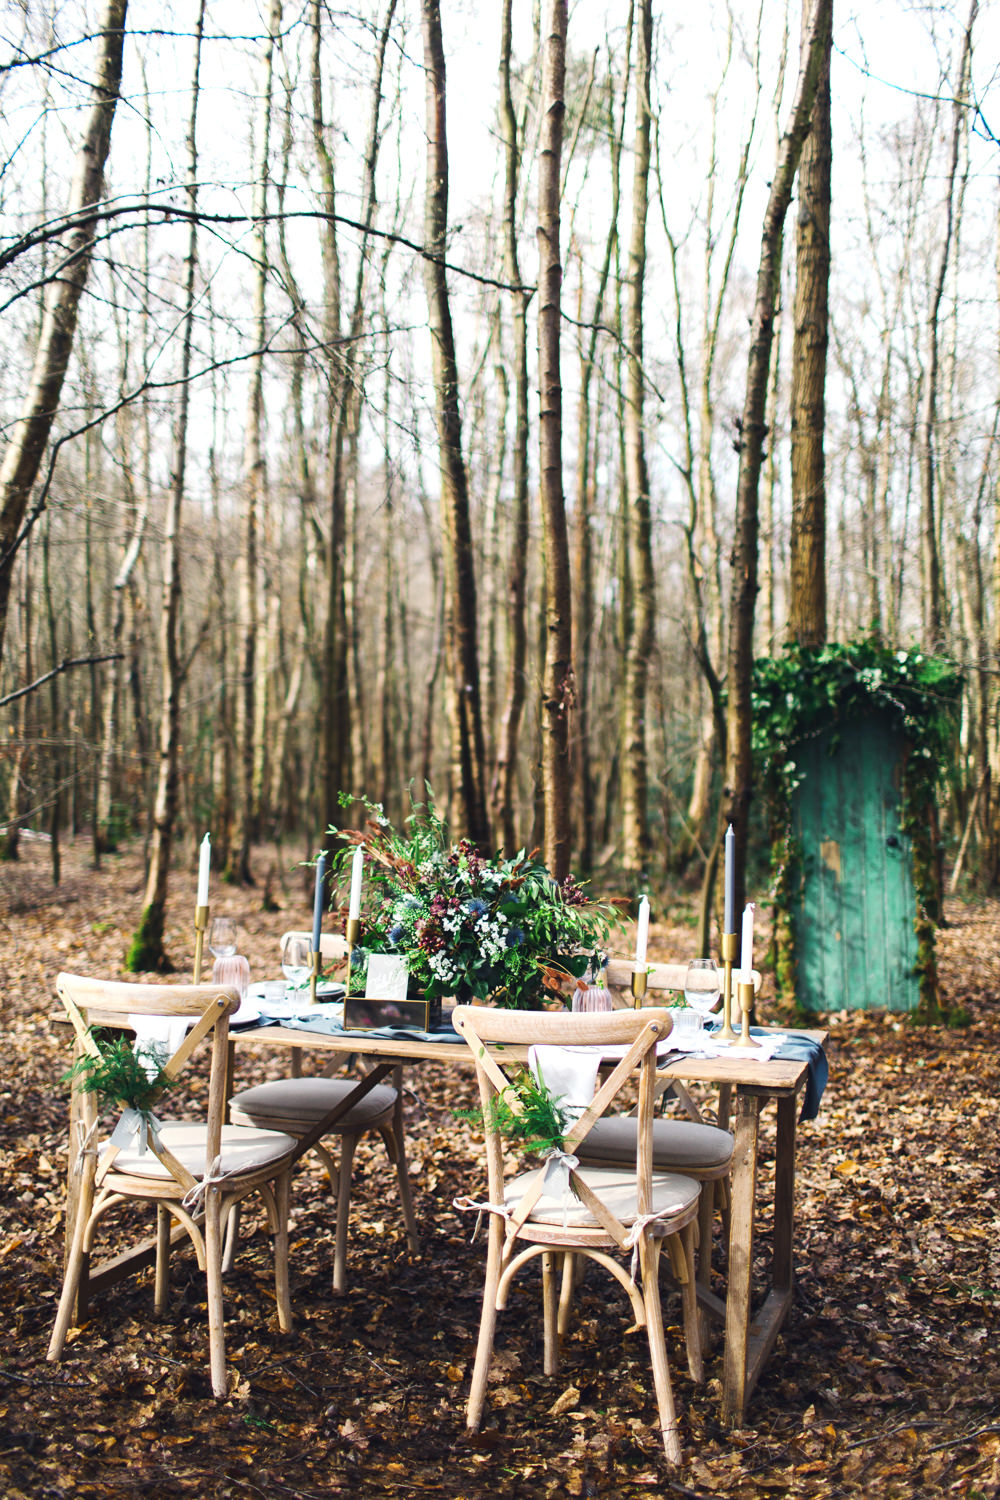 Tablescape Outdoor Woods Rustic Furniture Nordic Woodland Elopement Wedding Ideas Nina Wernicke Photography